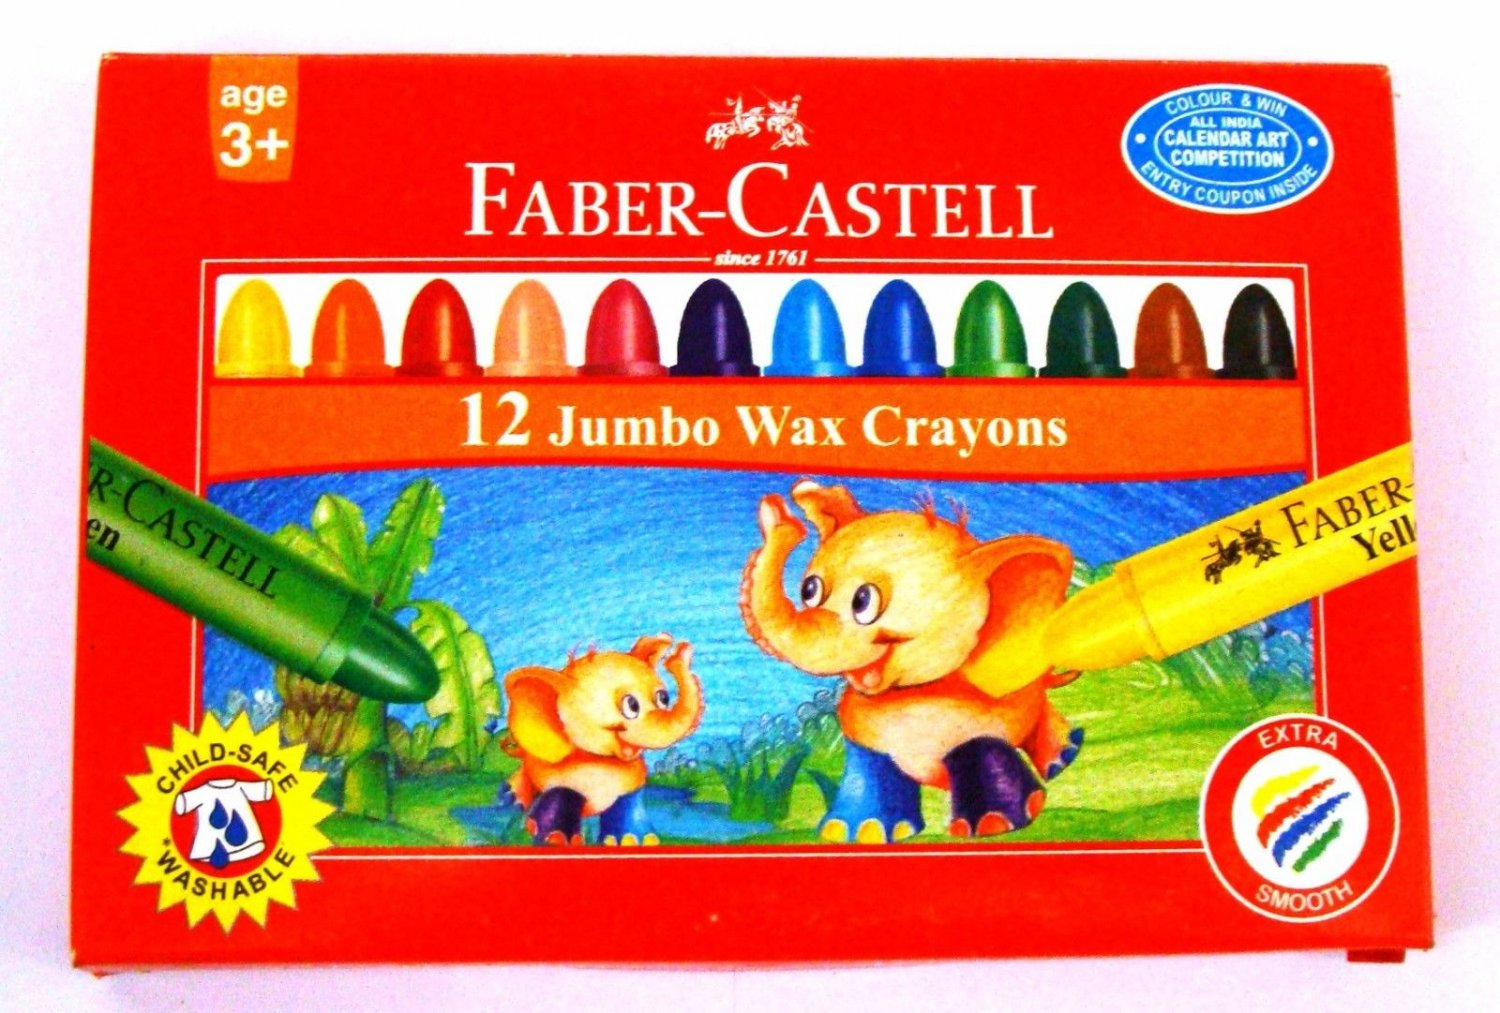 Faber-Castell  12 Jumbo Wax Crayons  Assorted Shades   90 mm each